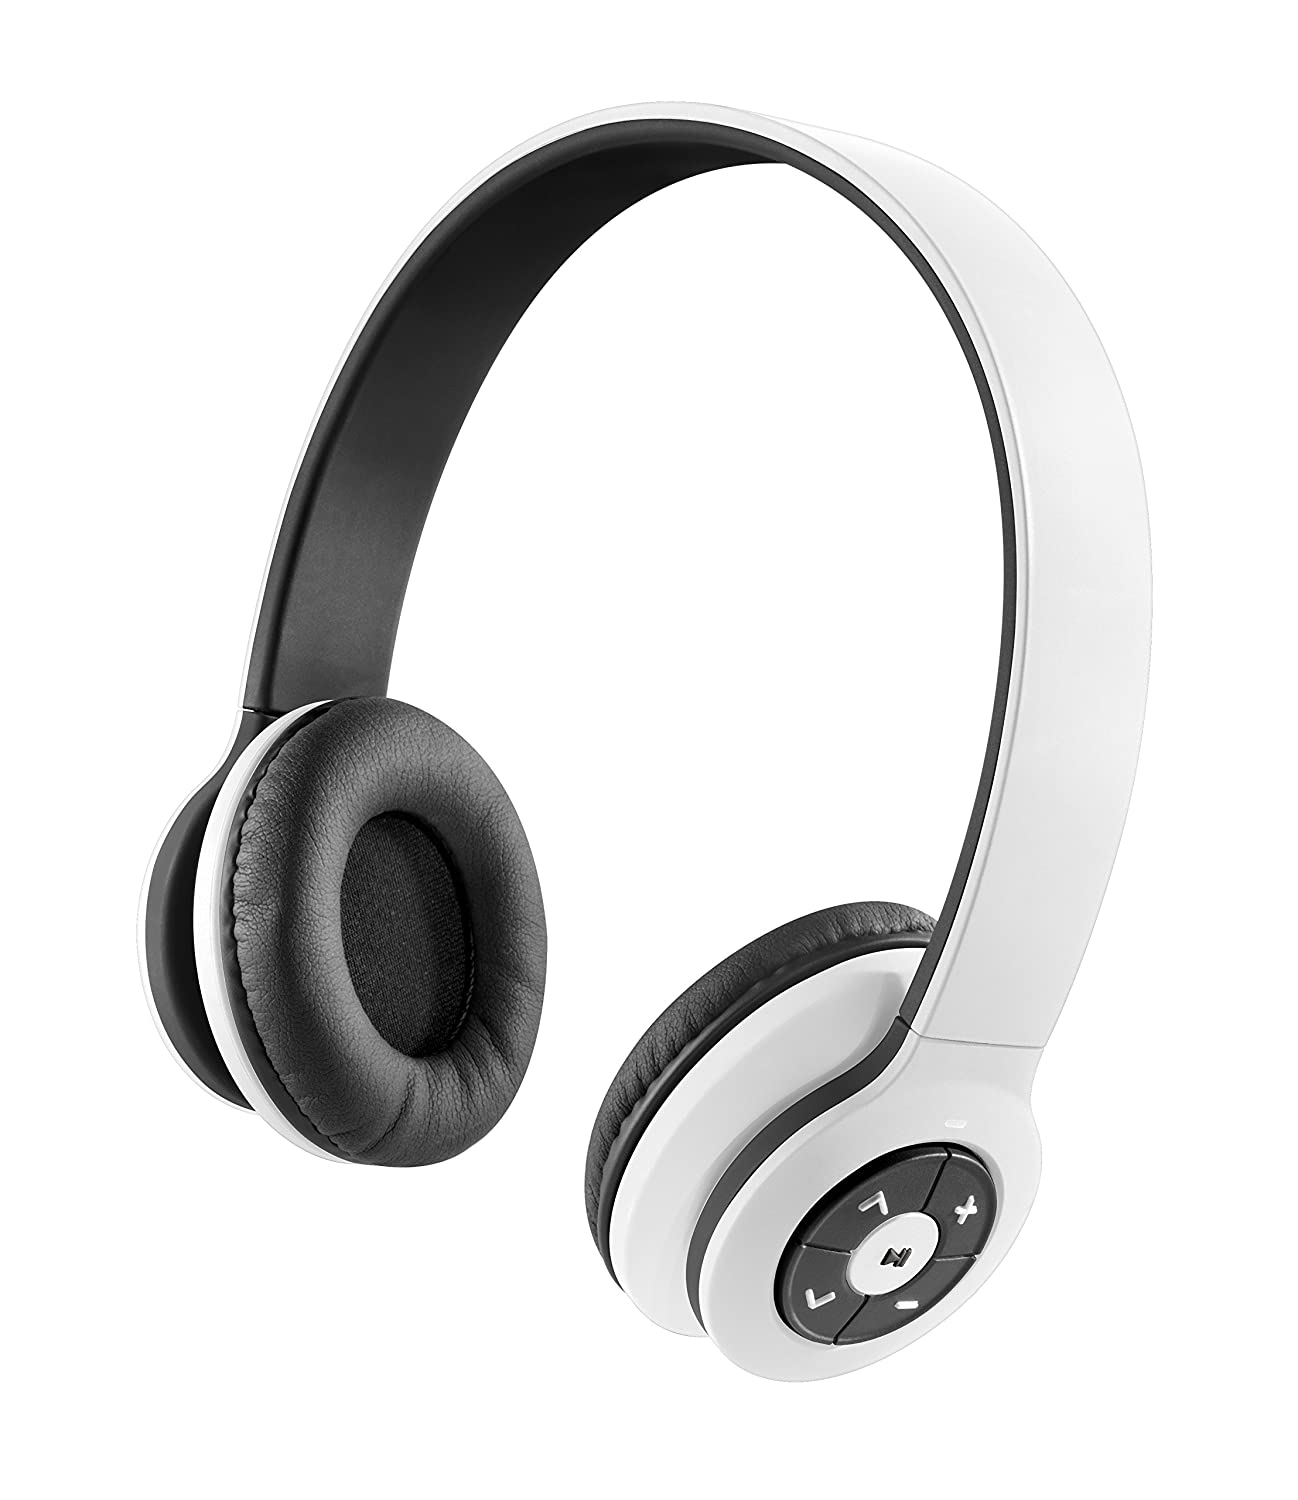 Jam transit bluetooth headphone with microphone white amazon co uk electronics